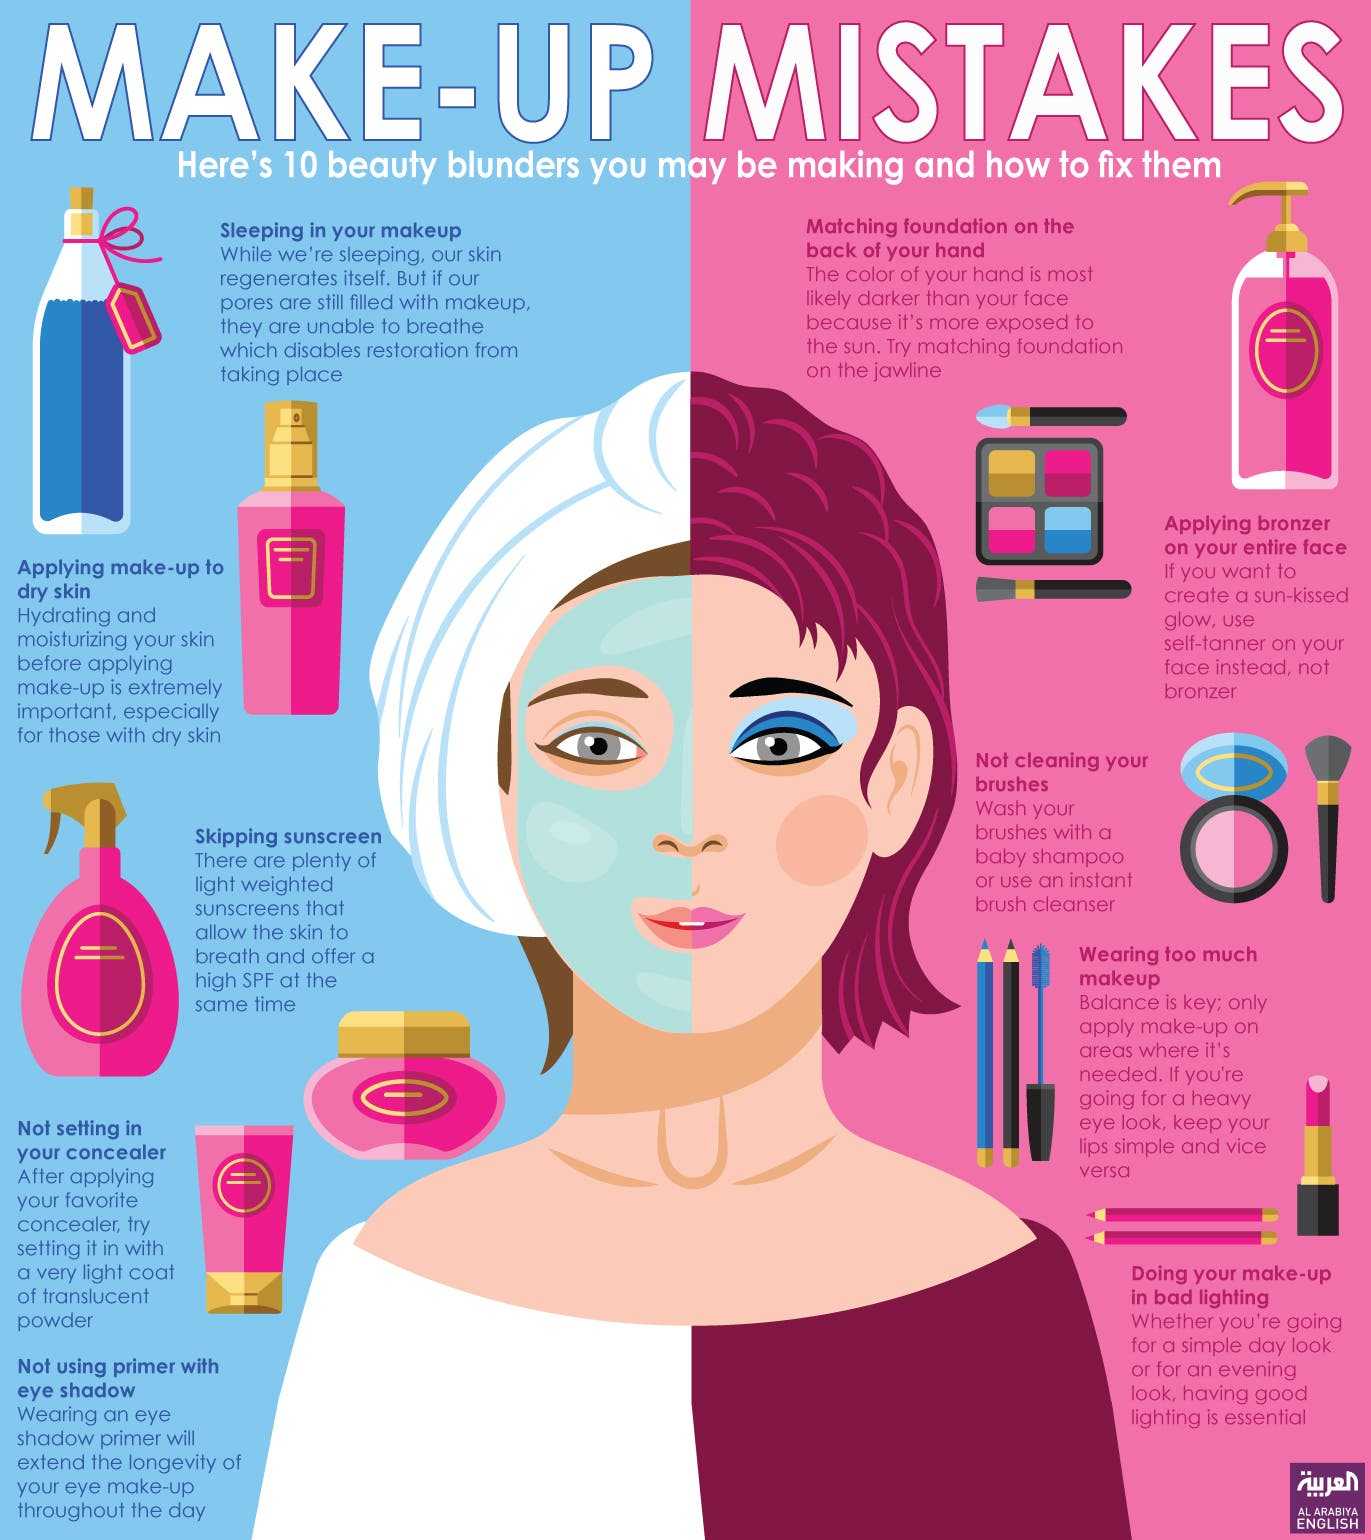 Infographic: Make-up mistakes